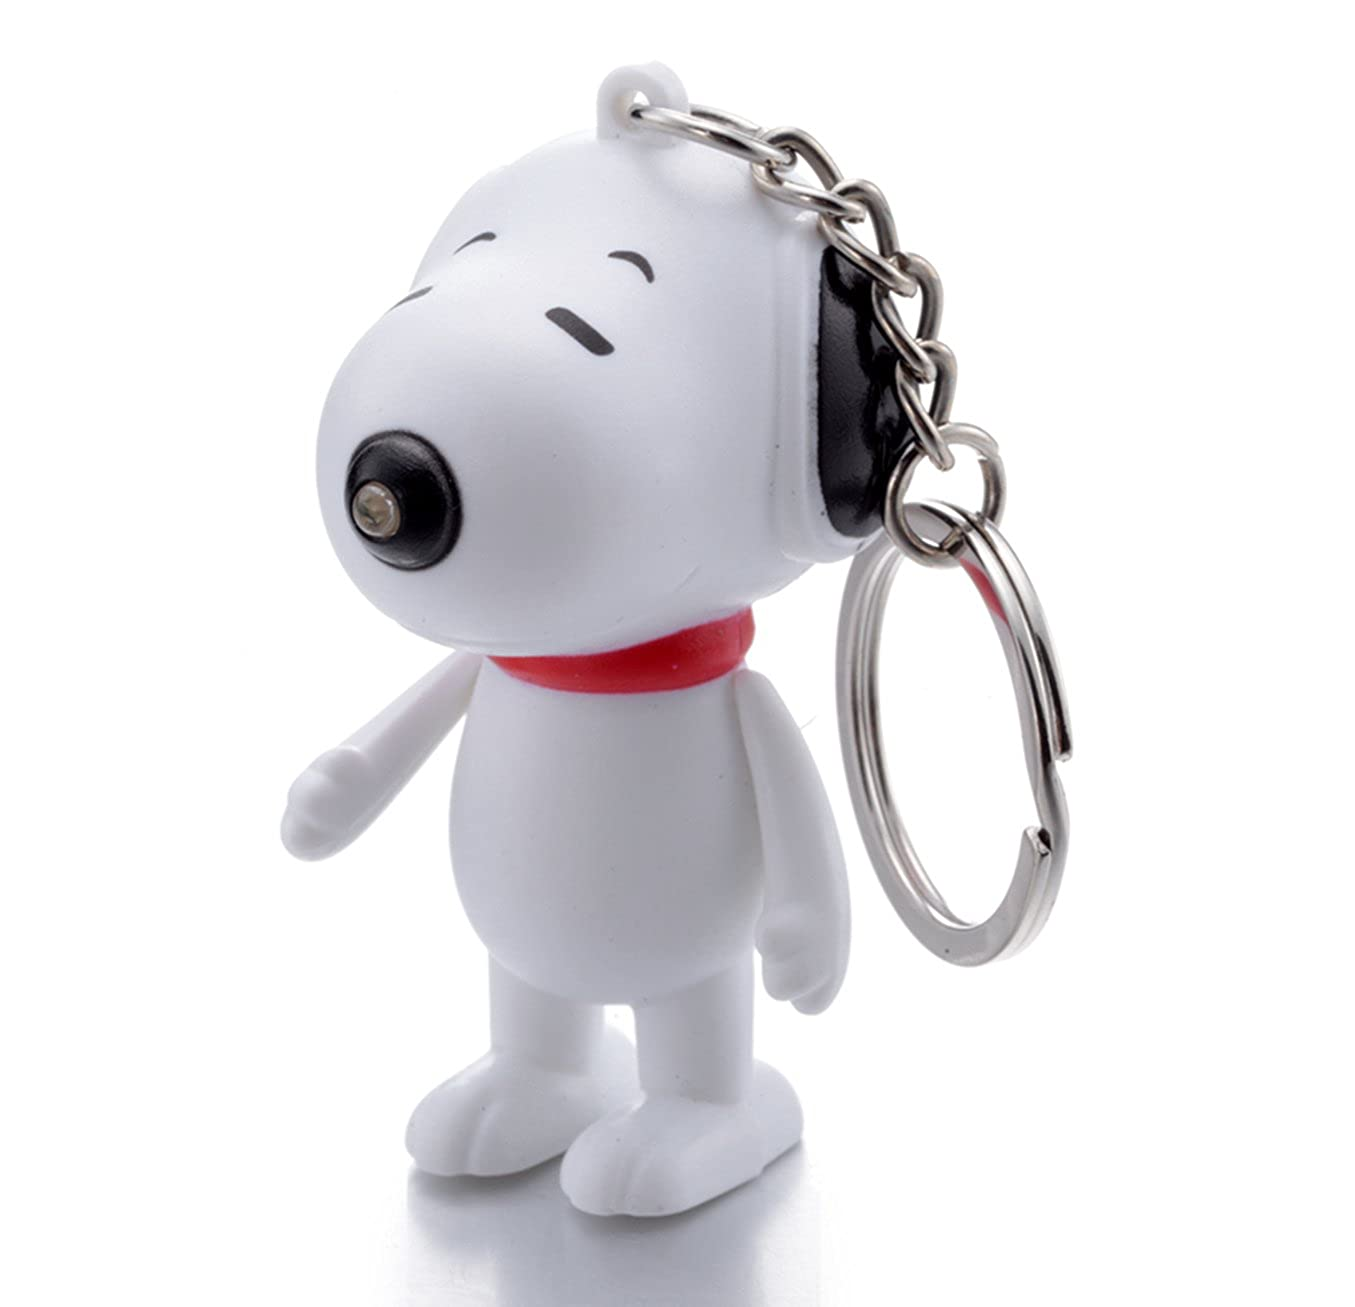 REINDEAR Snoopy LED Flashlight Light Up Keychain w/ Sound (Barks) US Seller